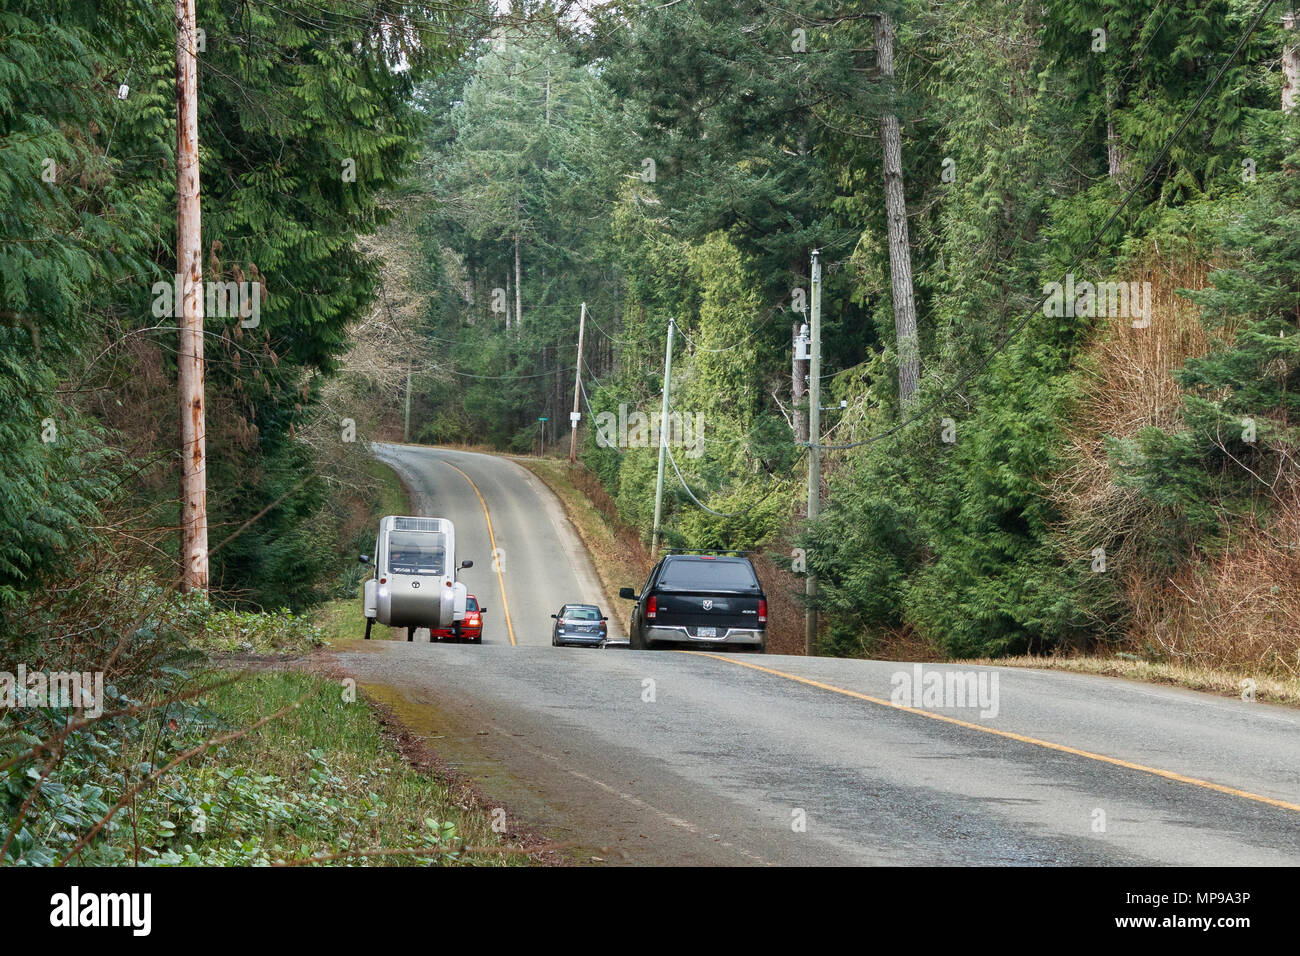 On a rural road through the forest, three cars travel down a hill ...